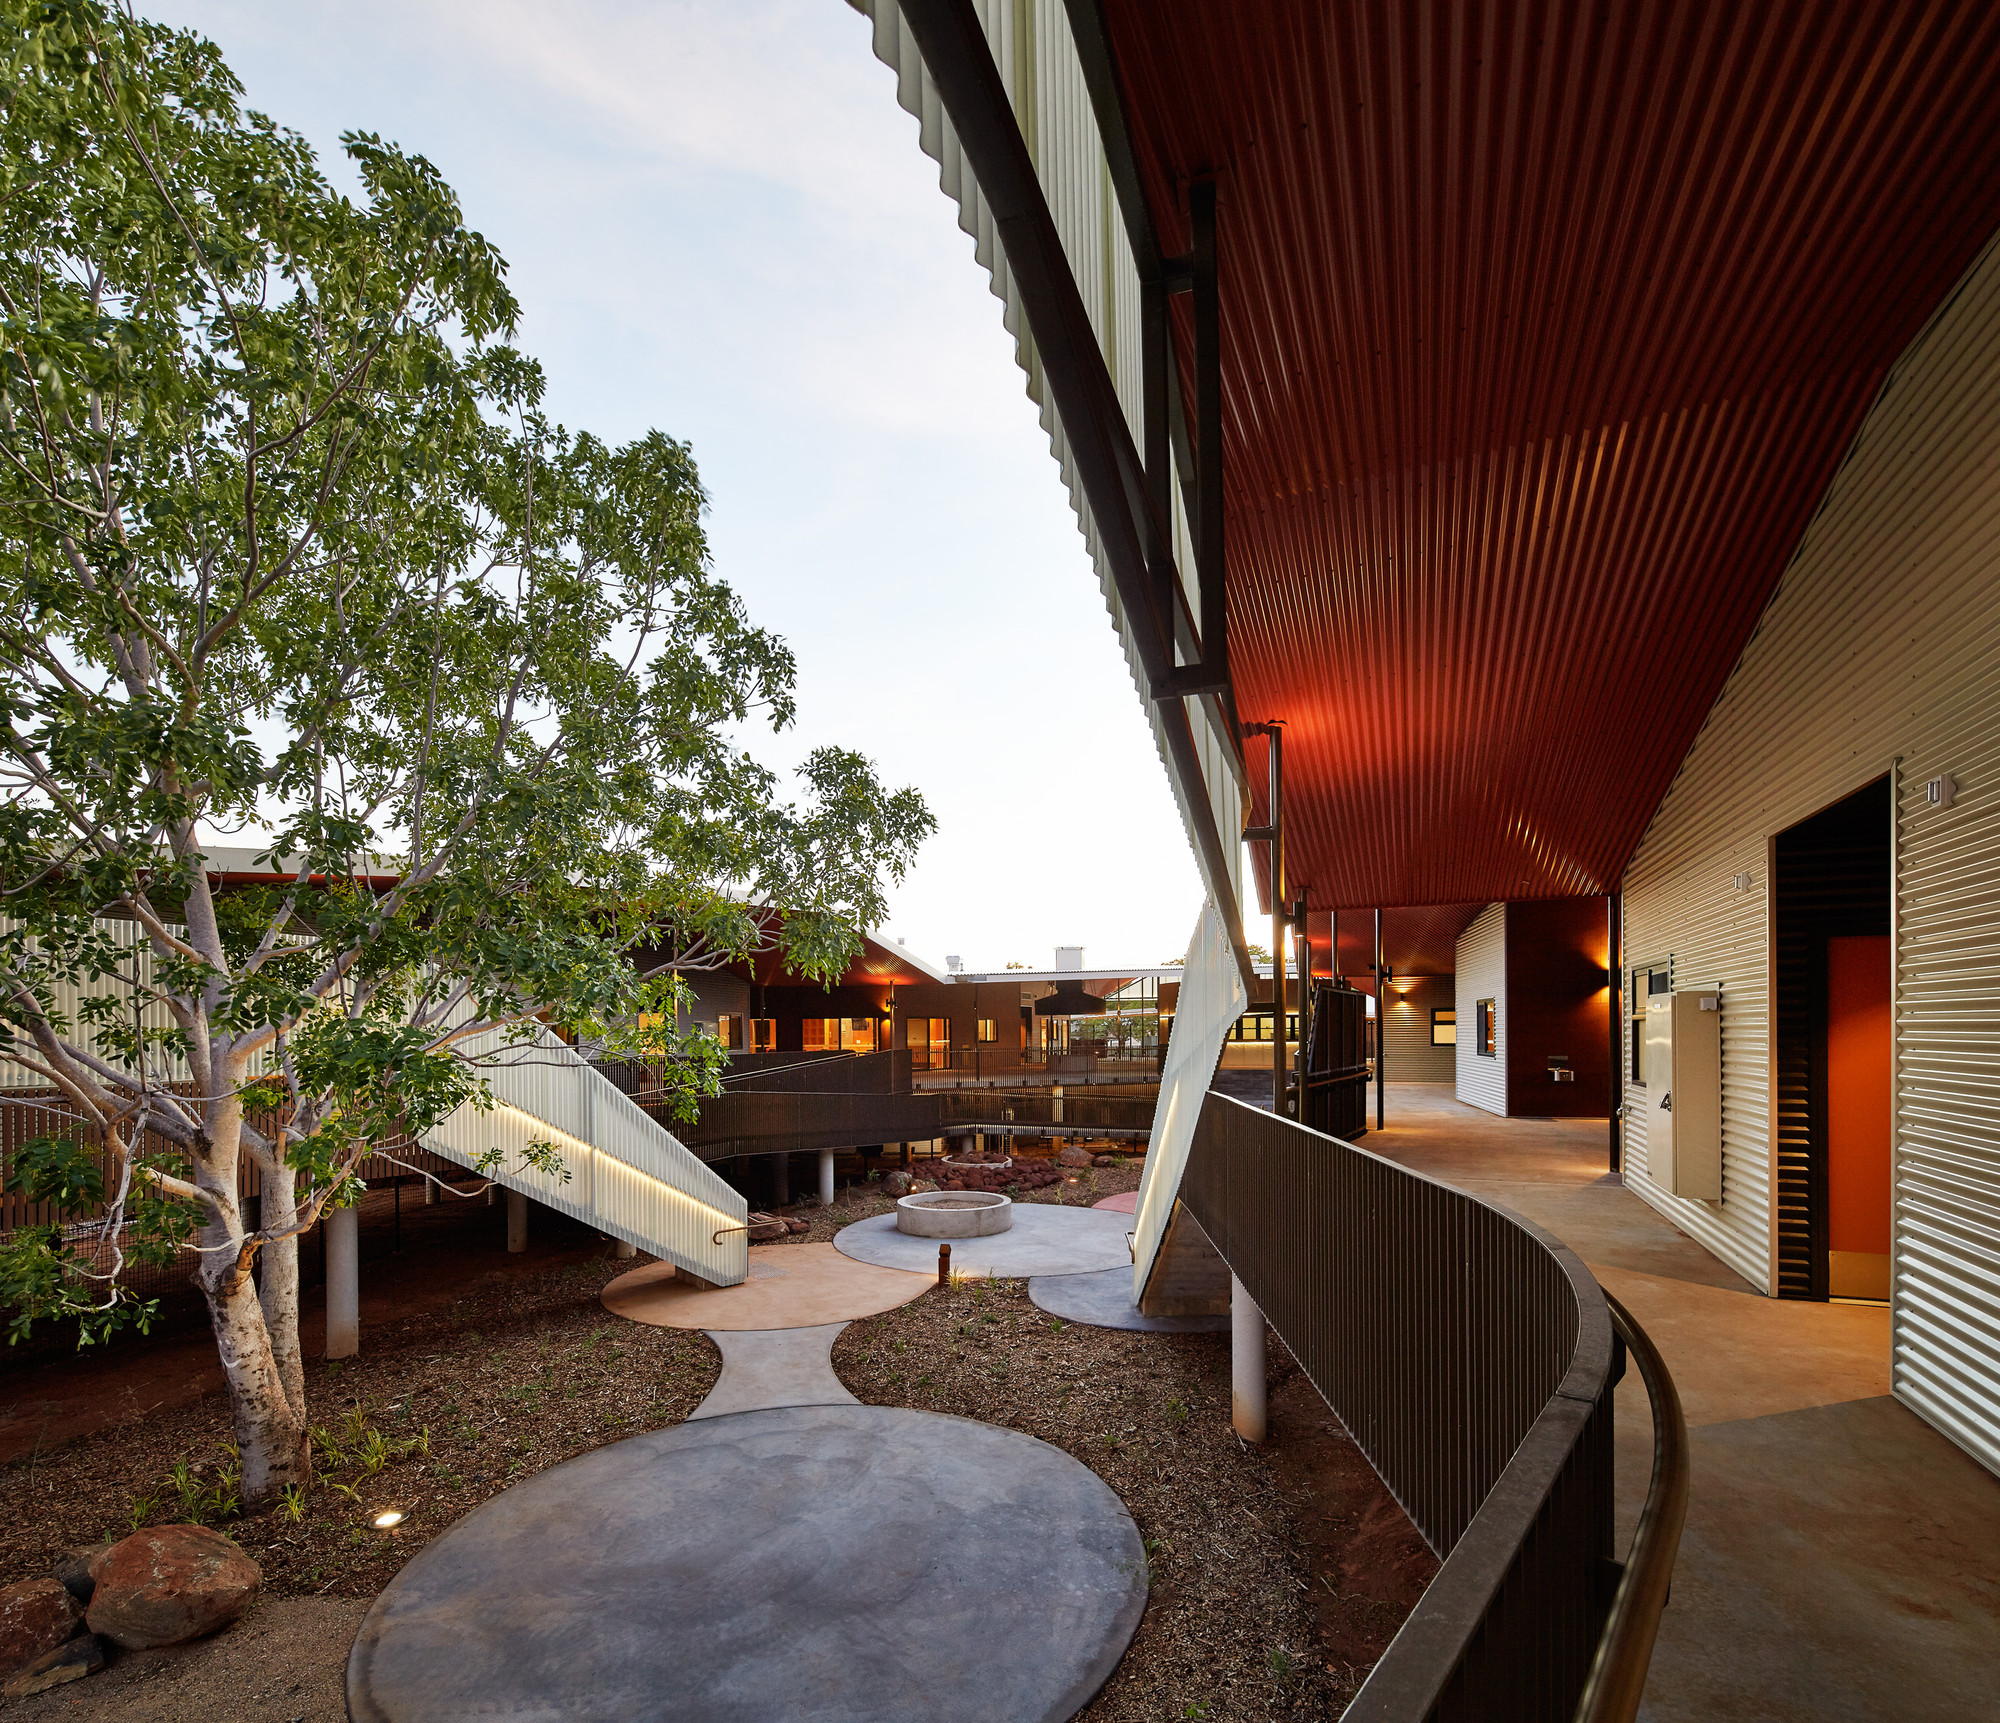 Centro de ancianos Walumba / Iredale Pedersen Hook Architects, © Peter Bennetts